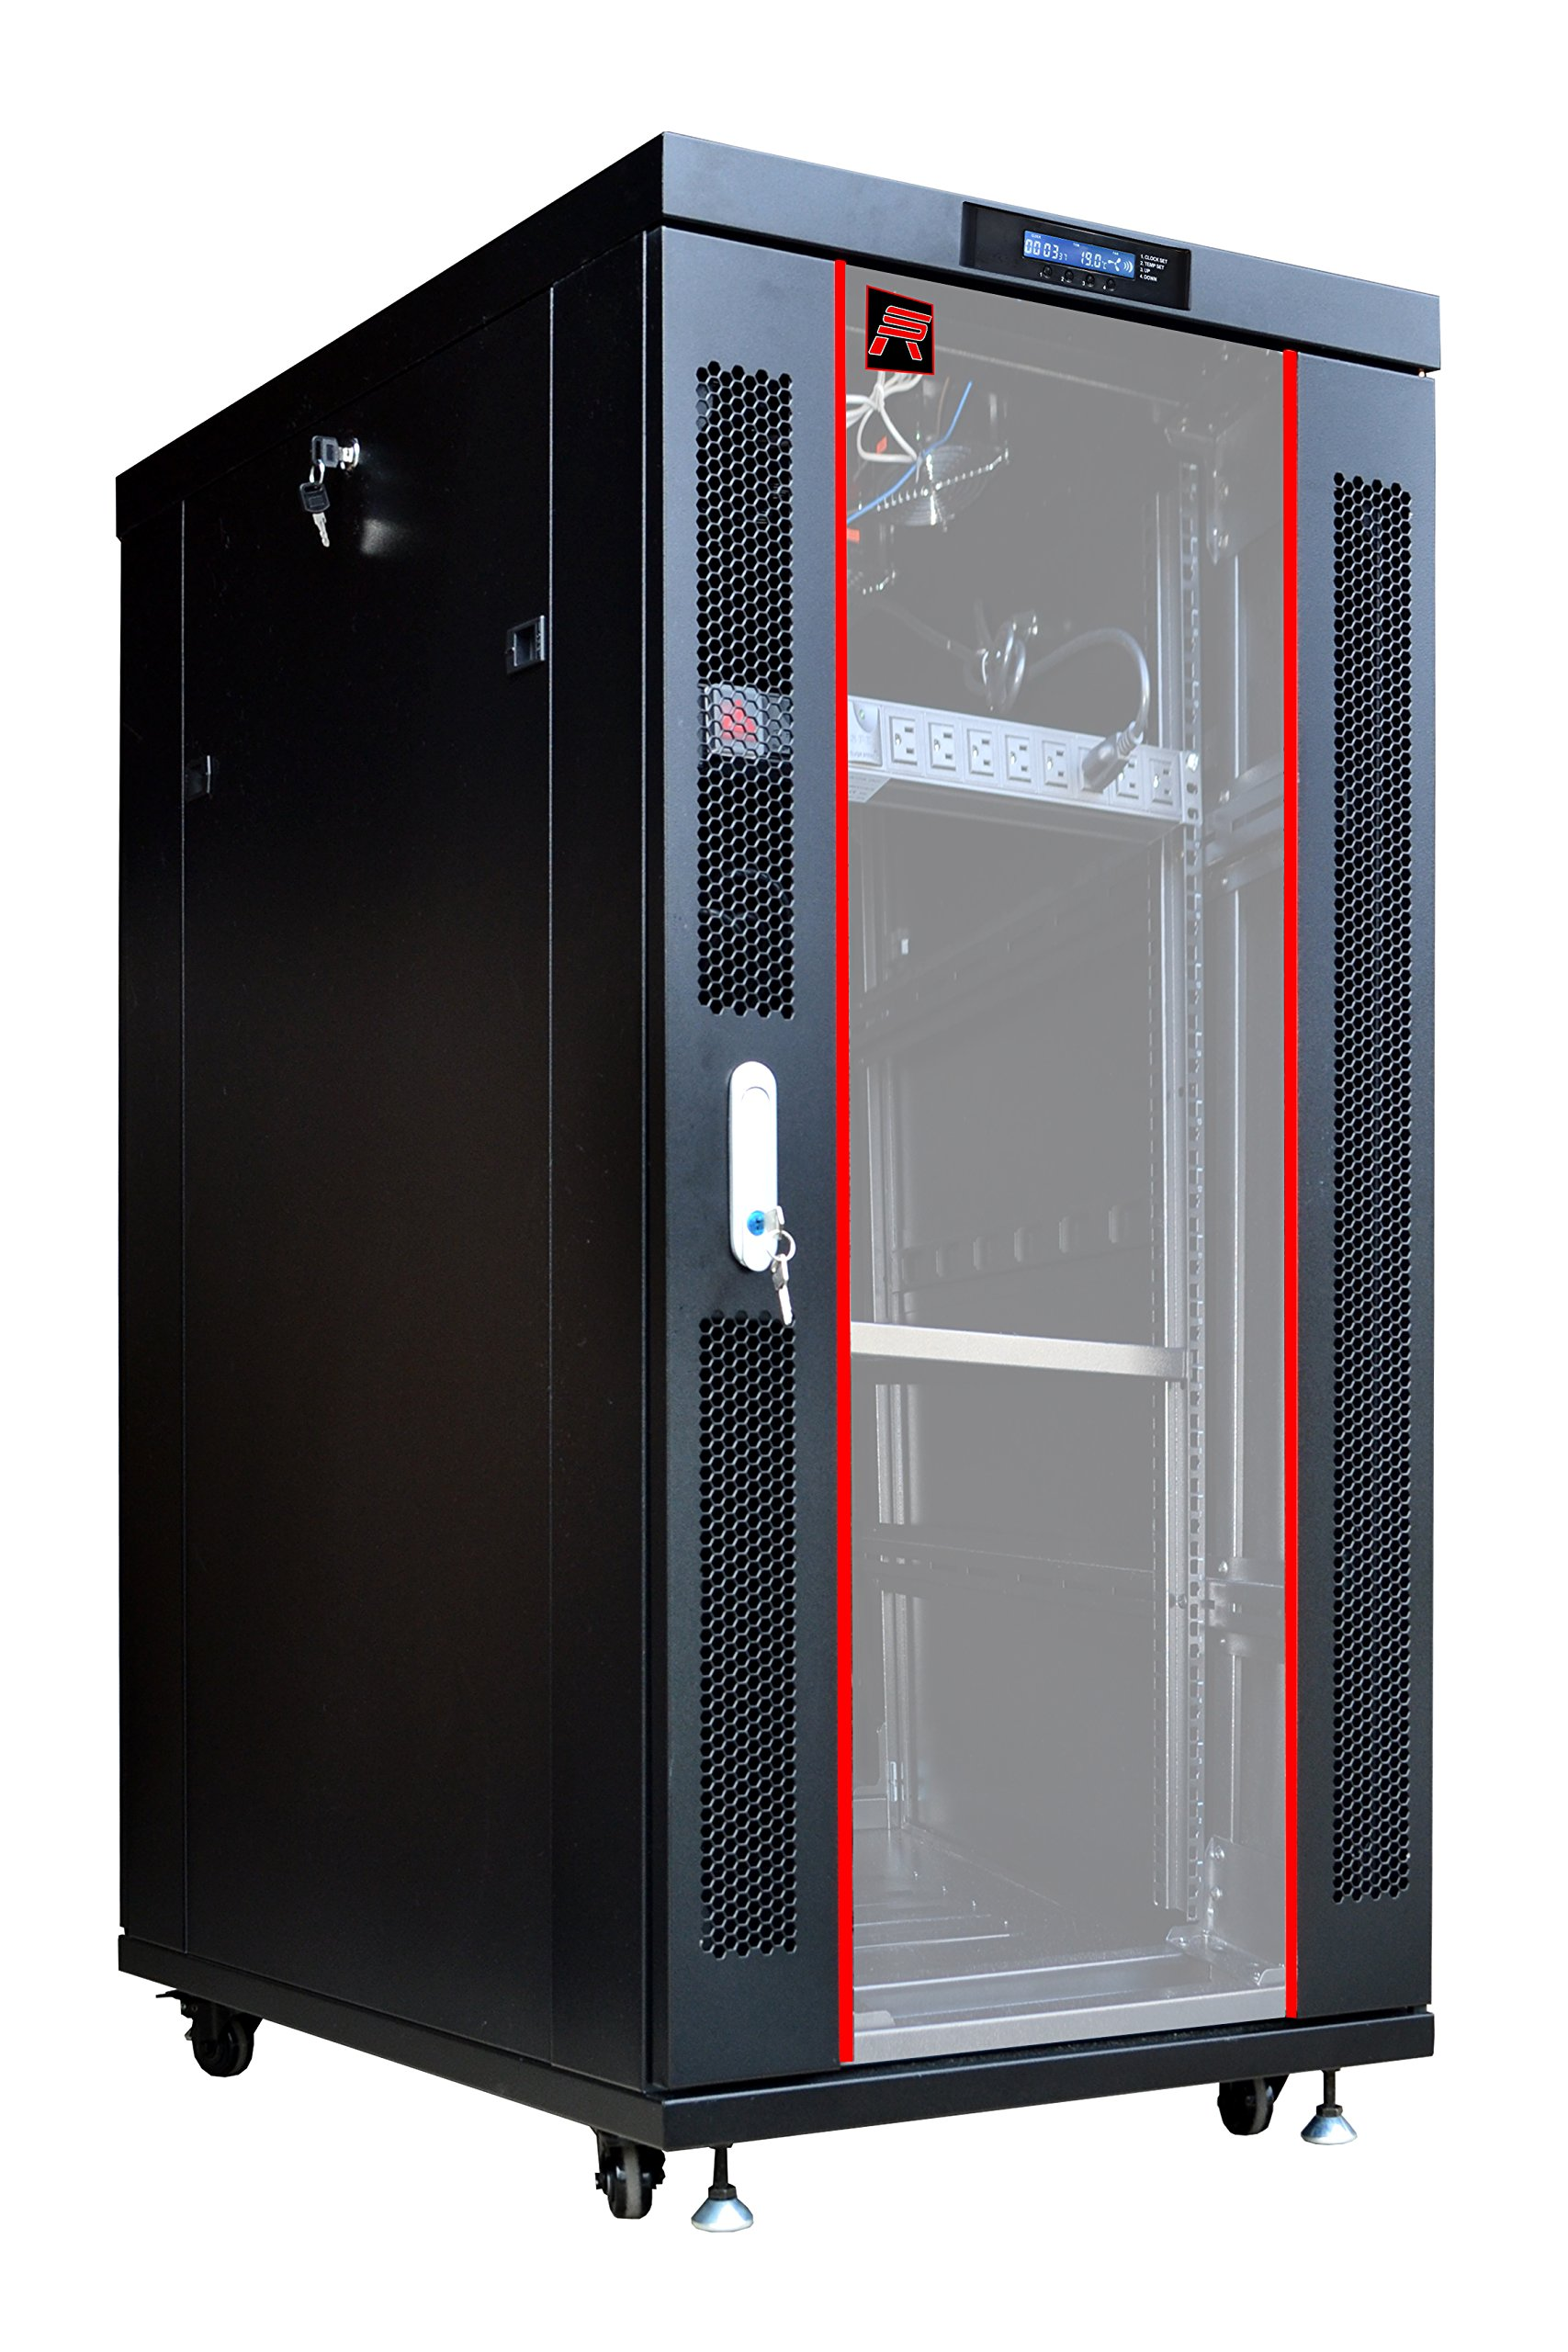 27U Free Standing Server Rack Cabinet.Fit most of servers. ACCESSORIES FREE!! Network IT Rack Cabinet Enclosure. ...